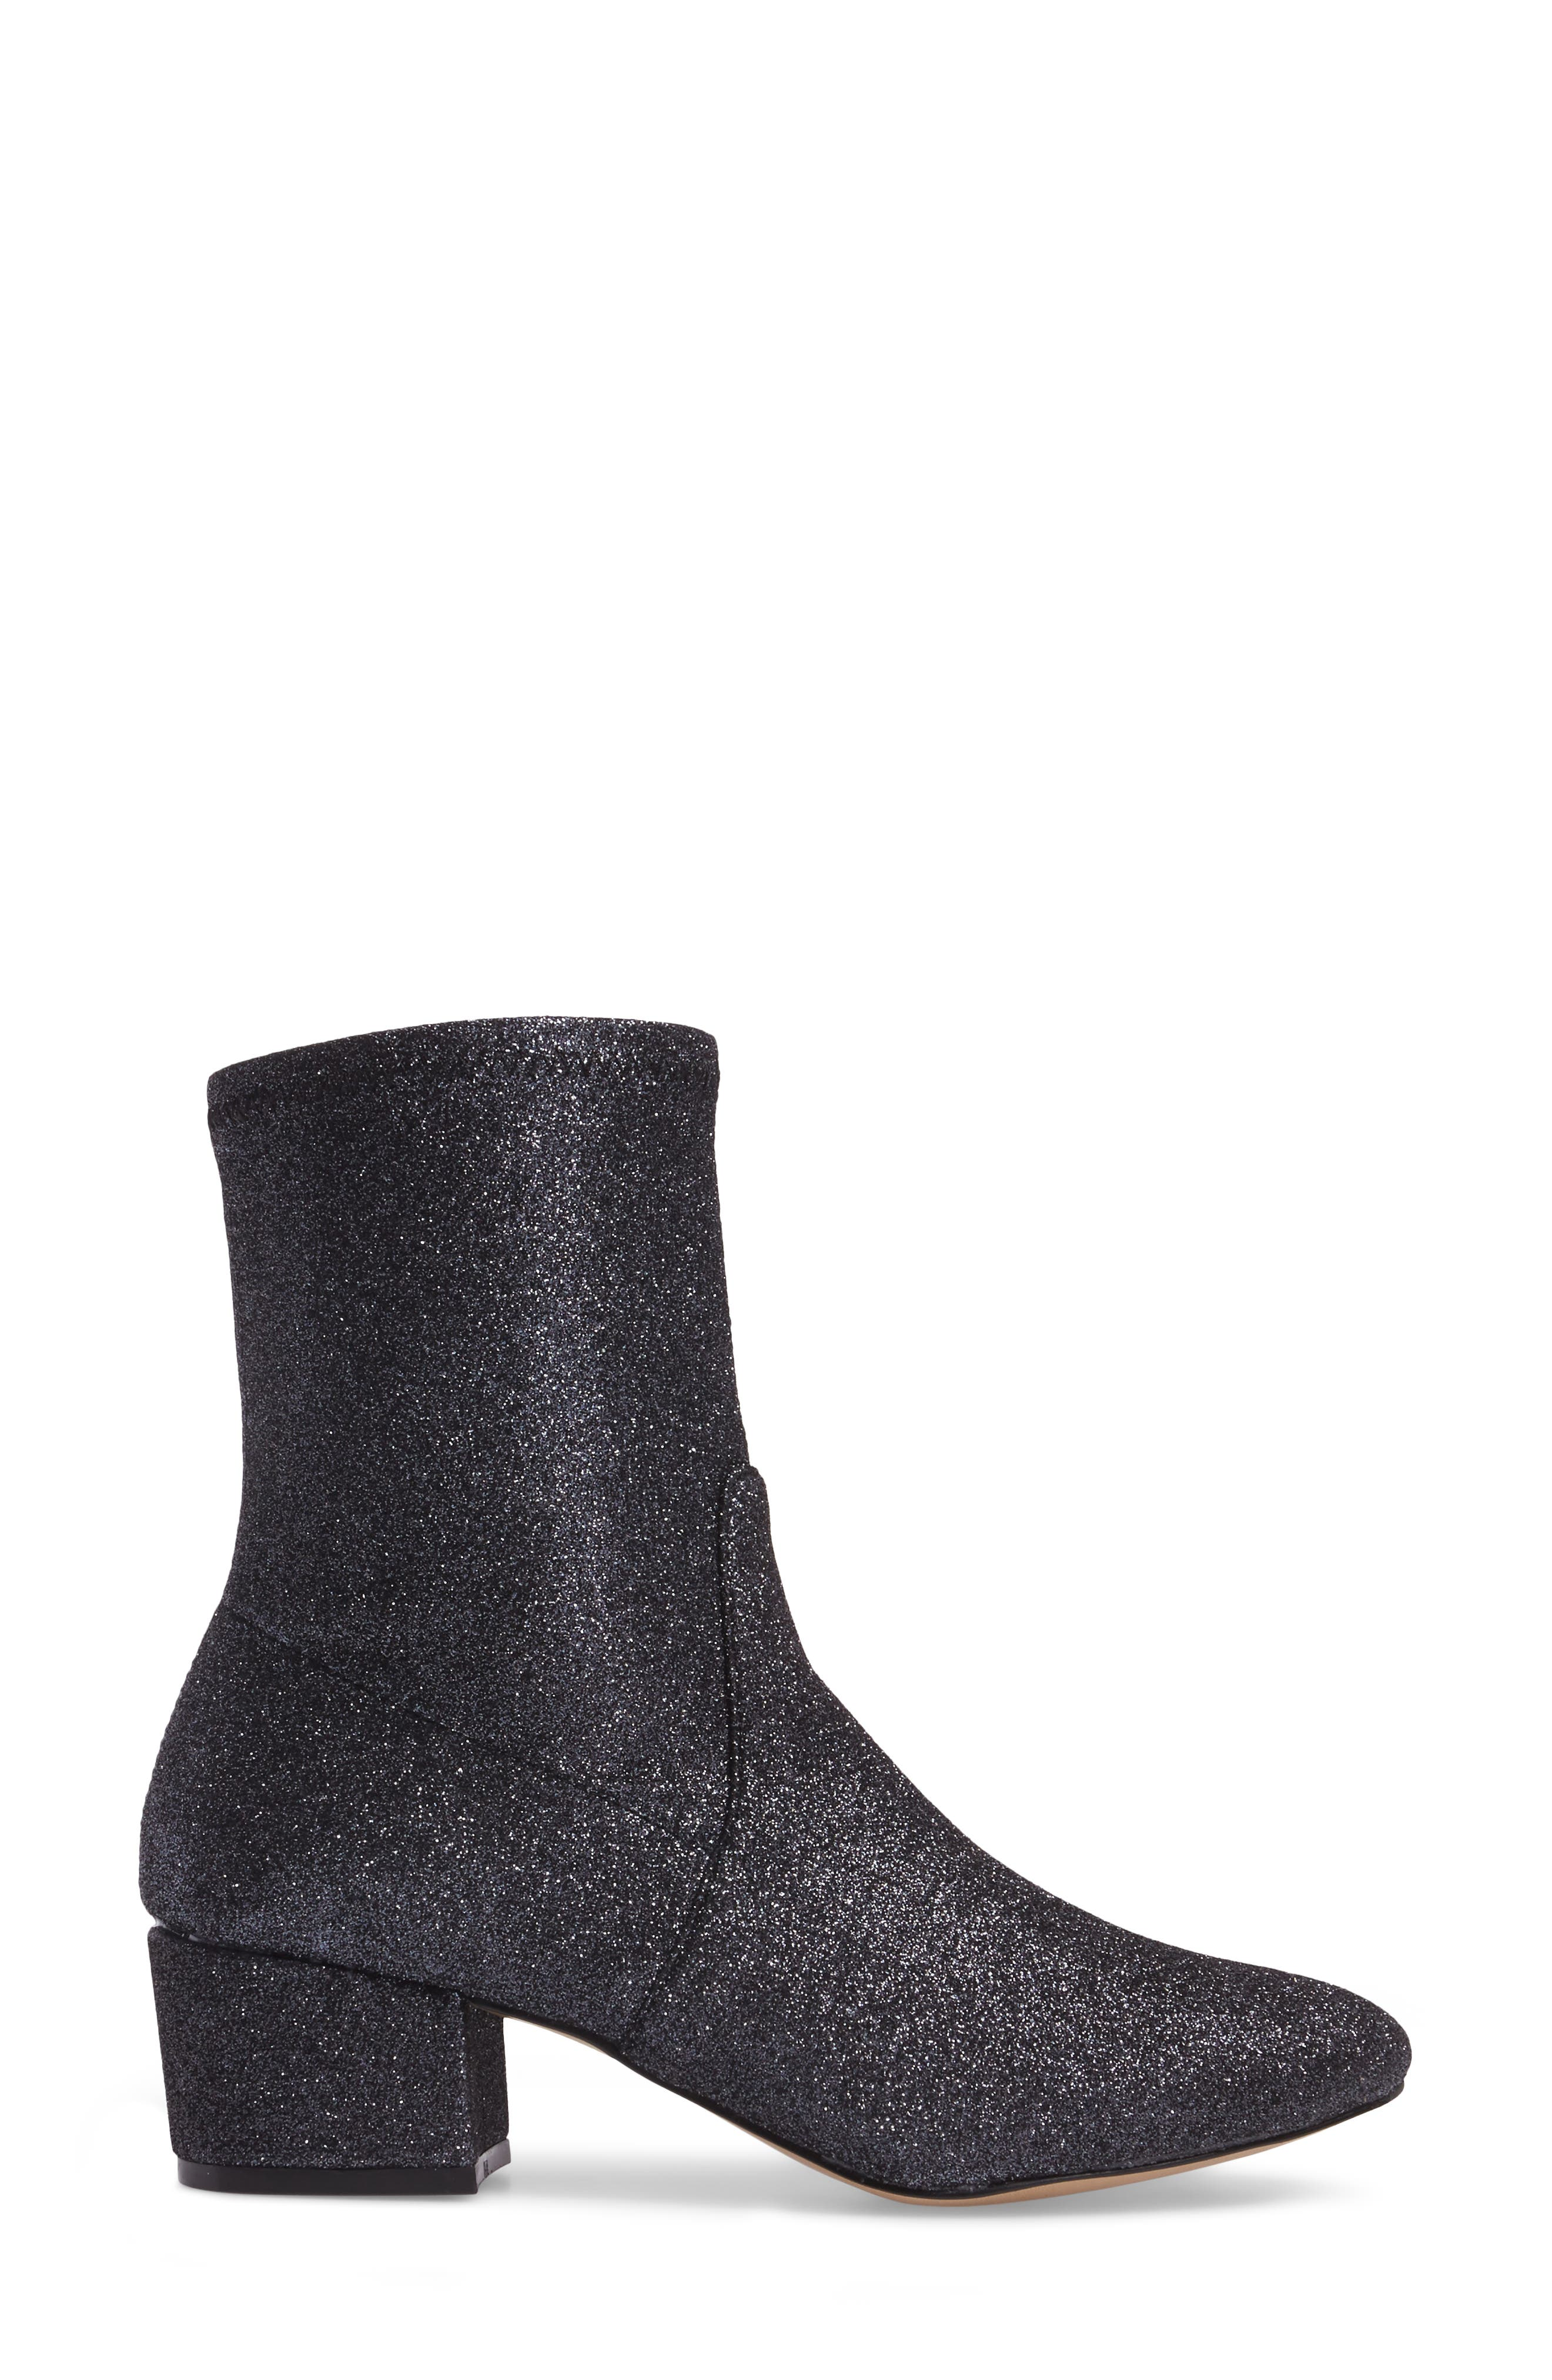 Gemma Bootie,                             Alternate thumbnail 3, color,                             Gunmetal Glitter